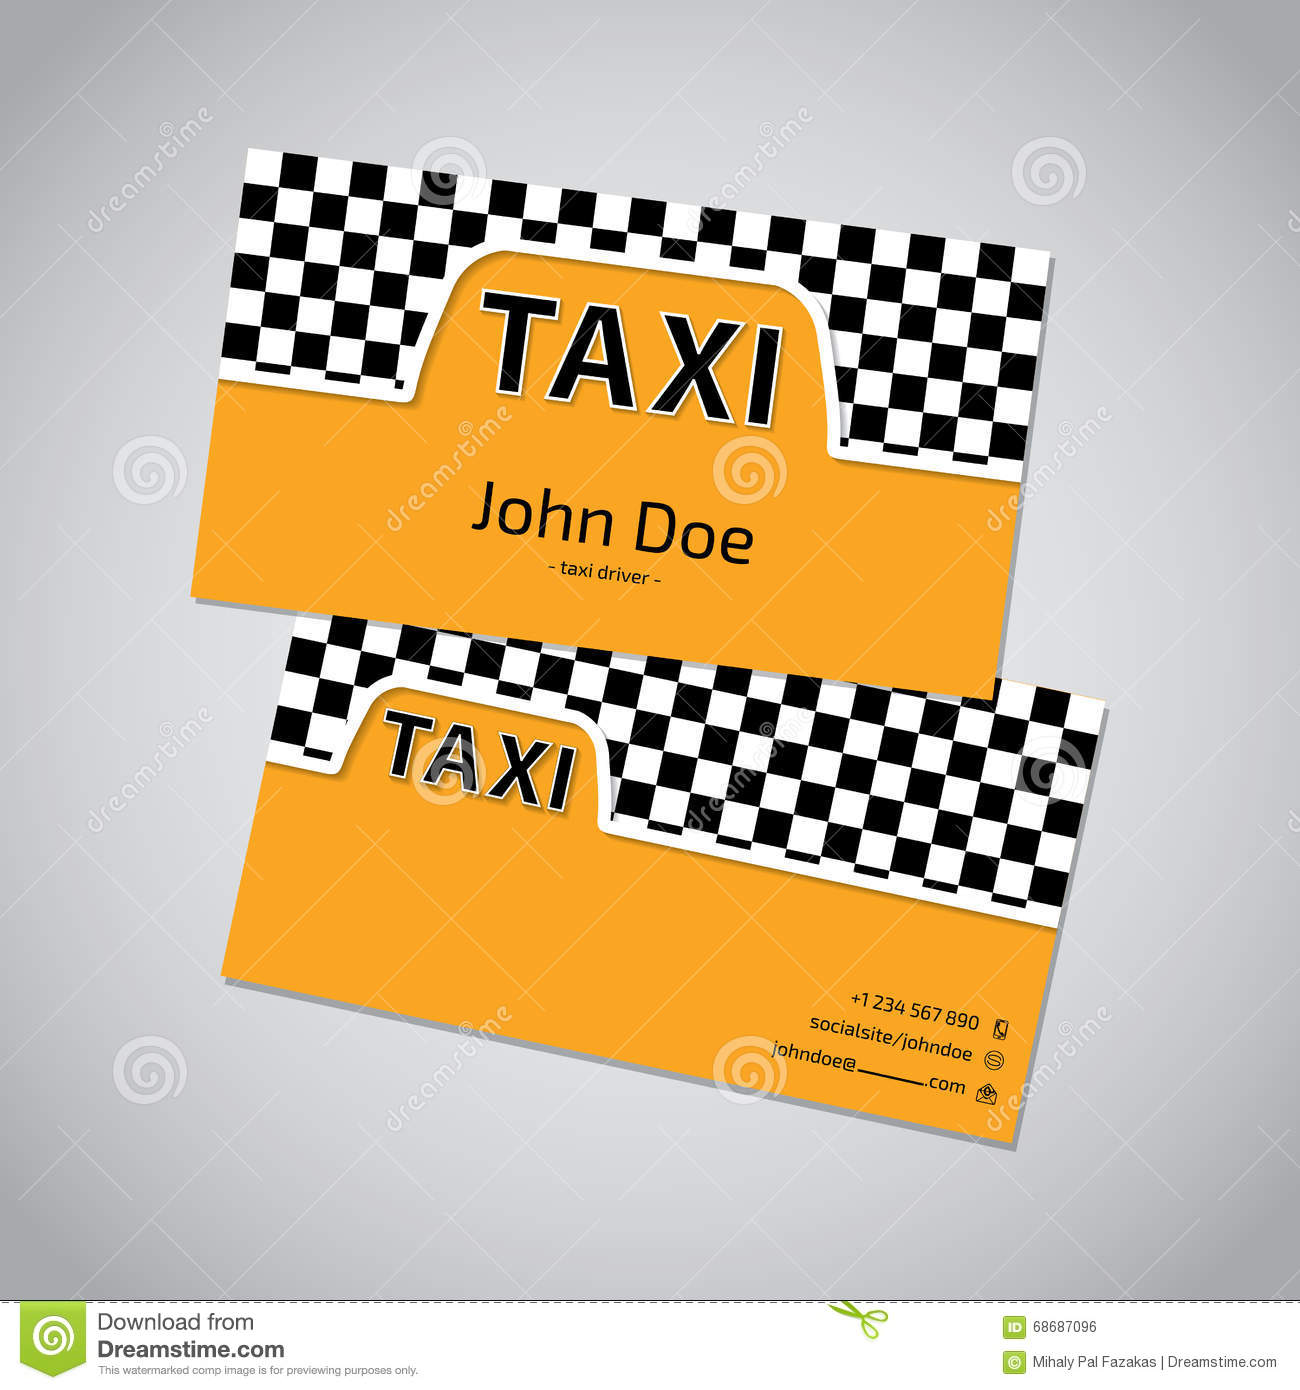 Taxi Business Card With Cab Symbol Stock Vector - Illustration of ...